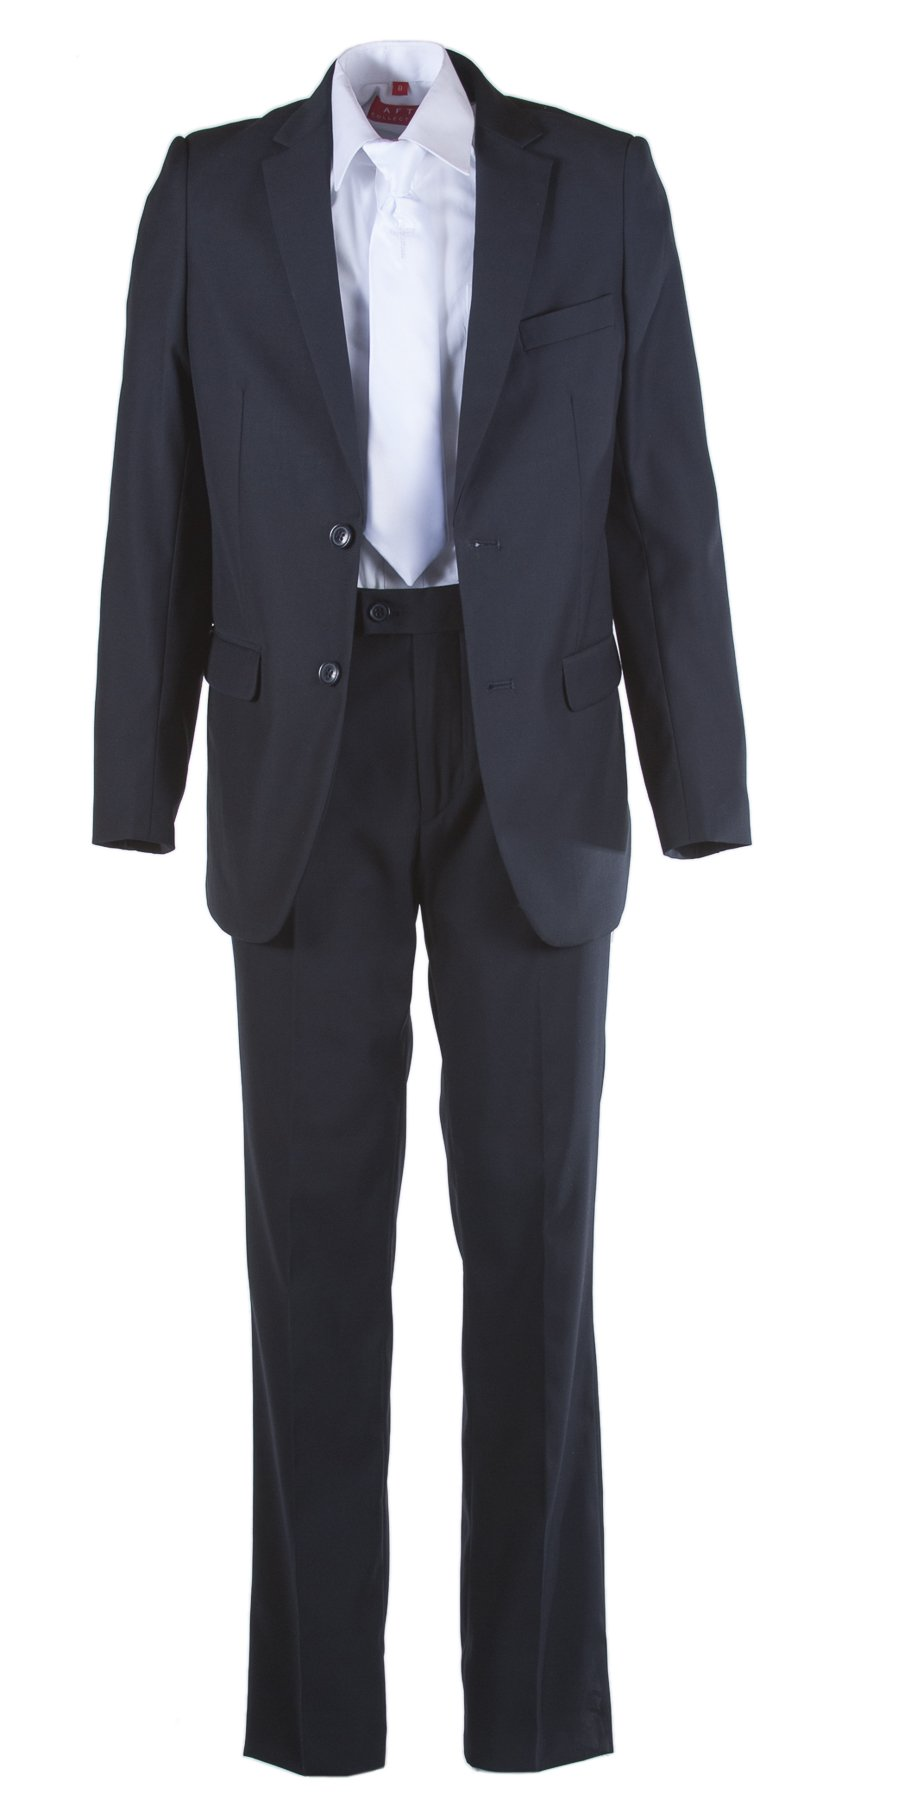 Boys Slim Fit Navy Communion Suit White Religious Cross Tie & Suspenders (10 Boys) by Tuxgear